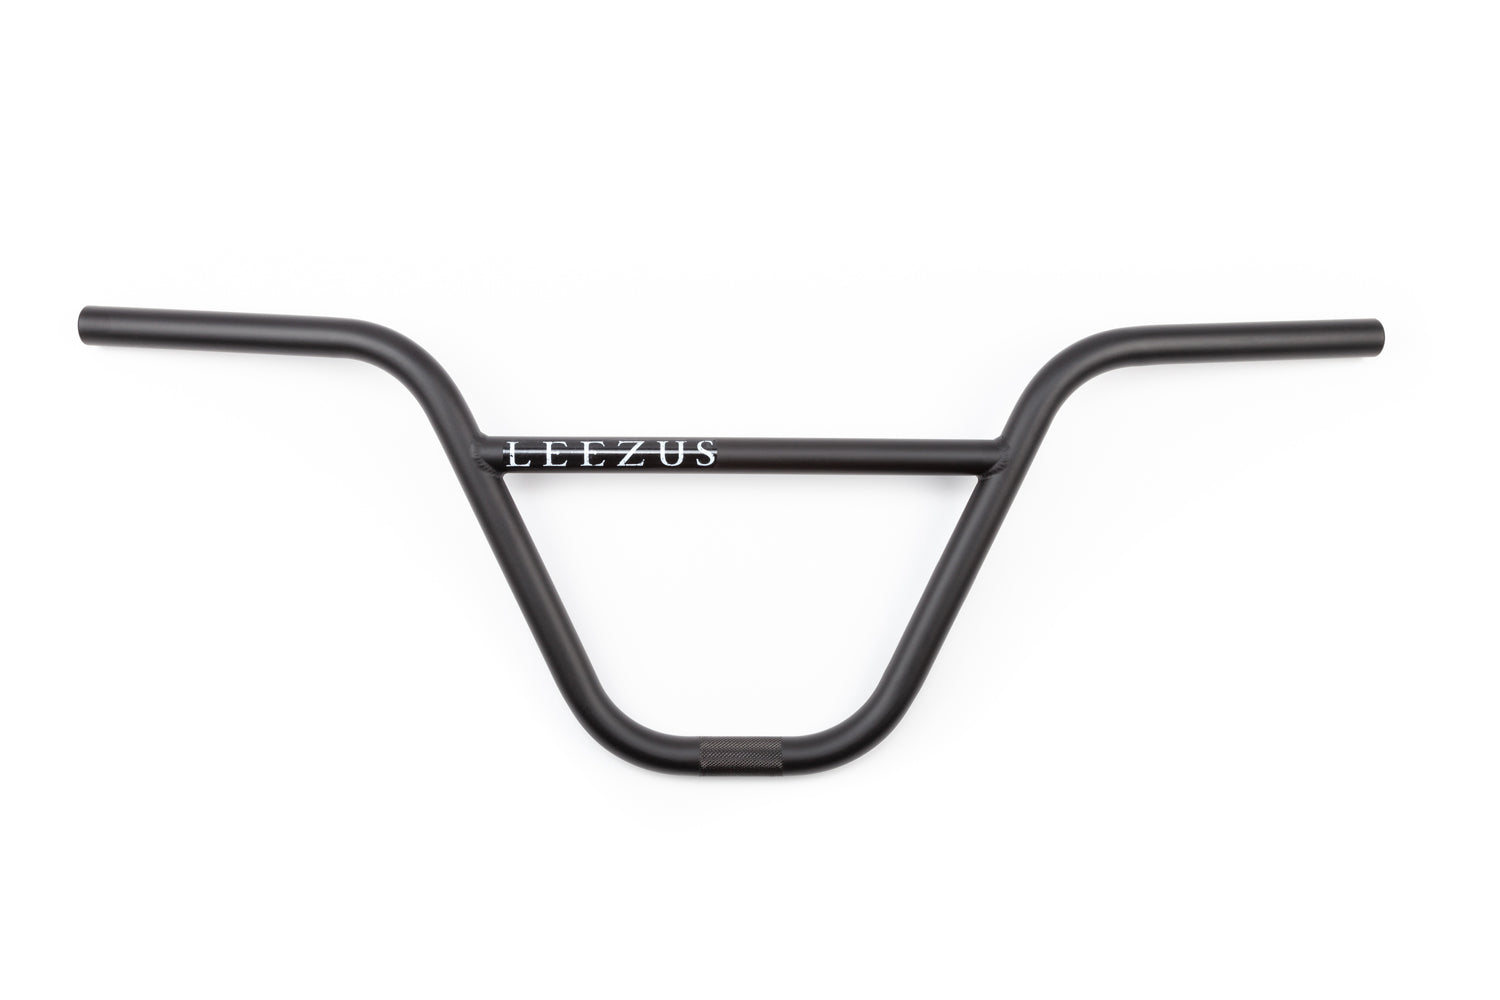 "BSD Leezus Bars - Flat Black - 1"" OS clamp"